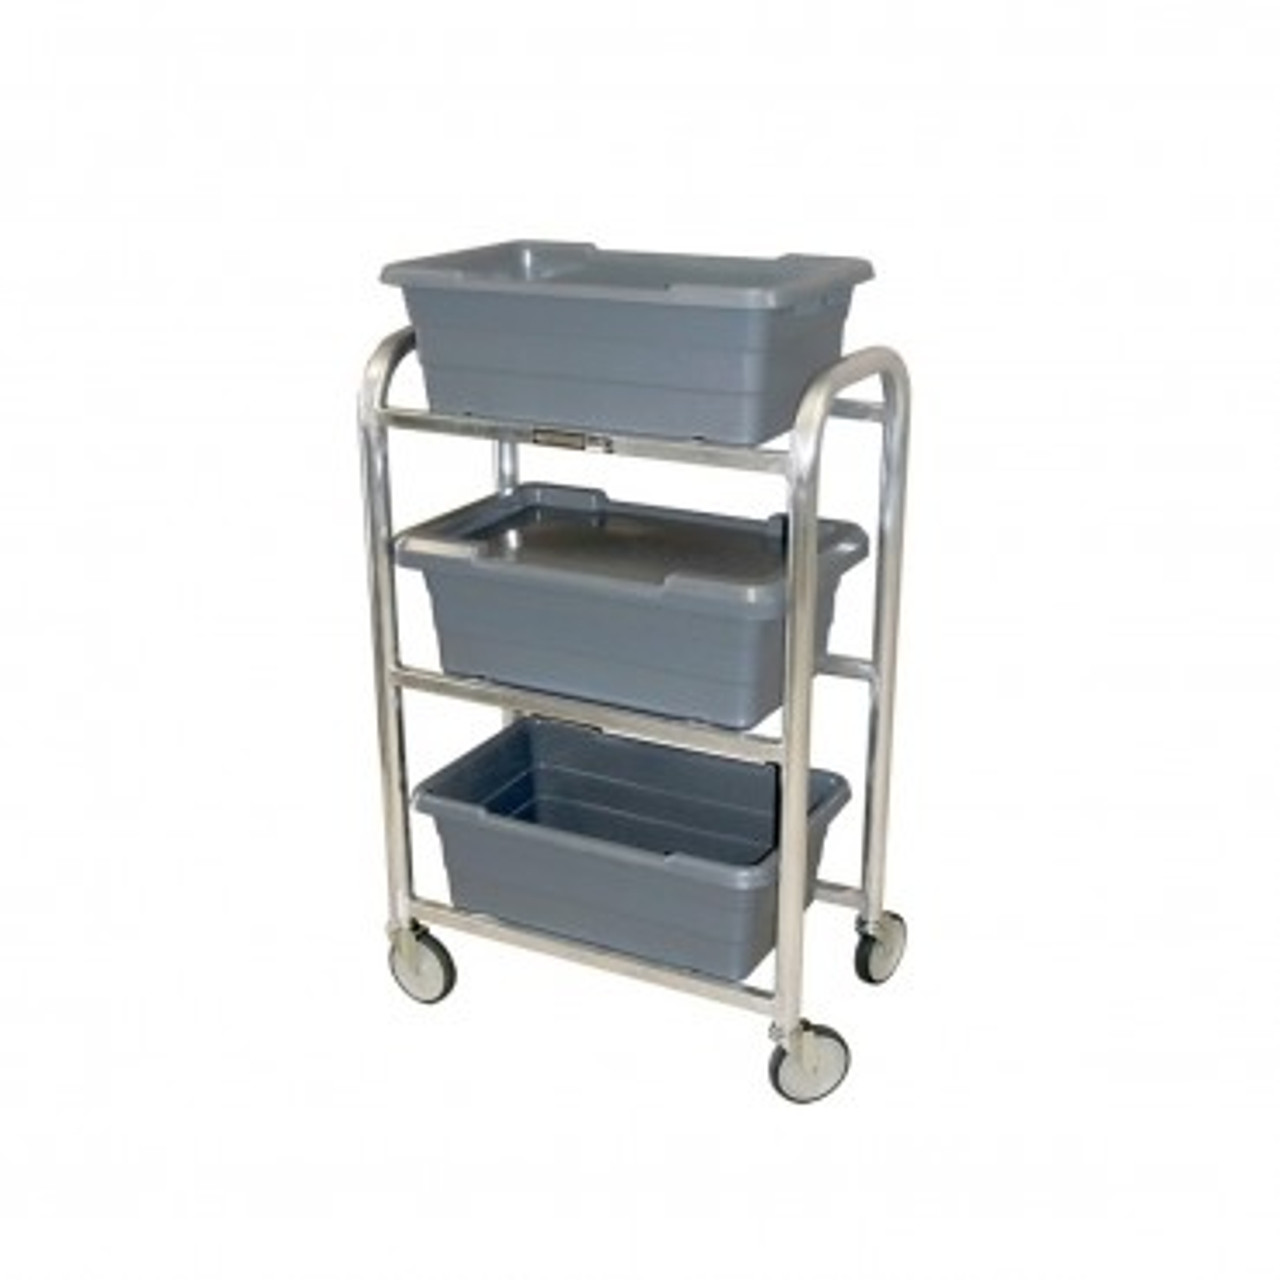 Vertical Tote Dolly - 3 TOTES